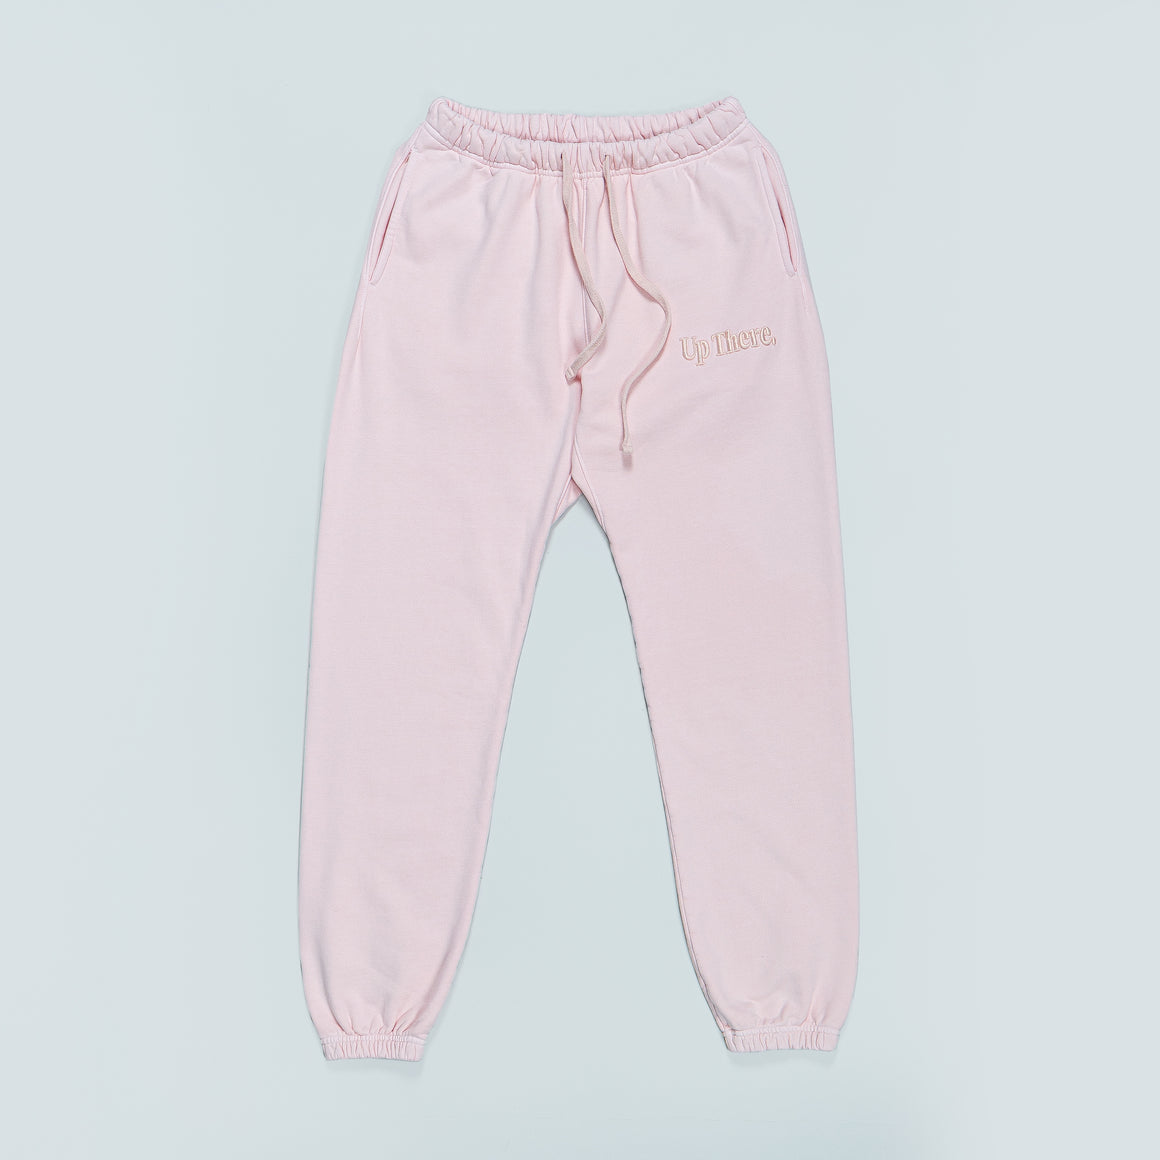 Up There - Heavyweight Sweat Pant - Pink - Up There